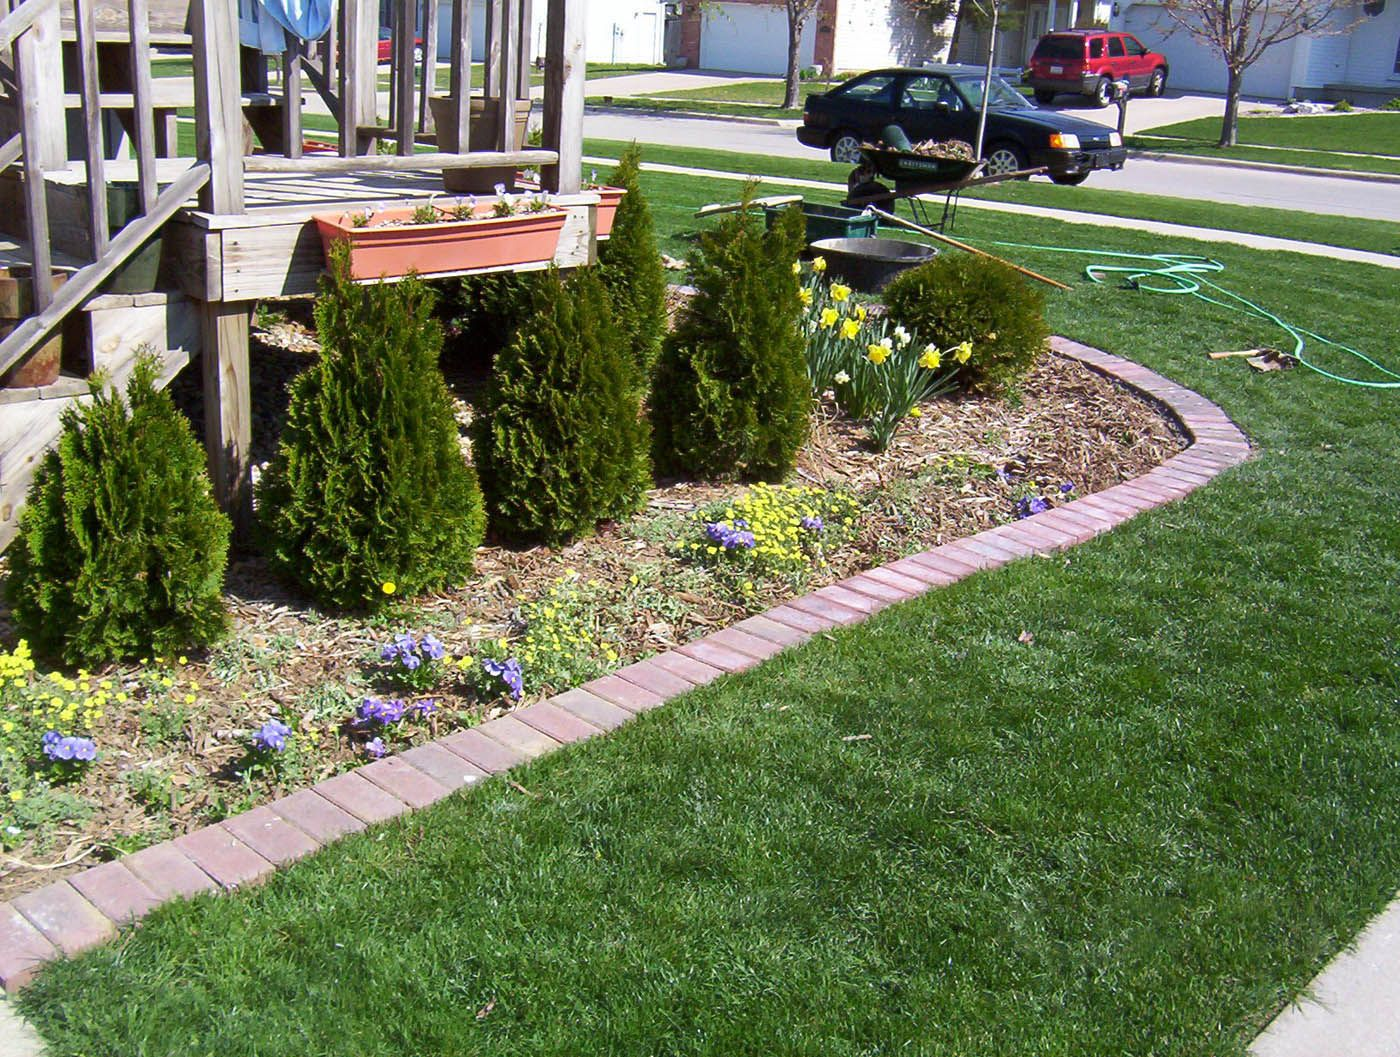 Simple flower bed edging design ideas lawn care for Flower garden landscape